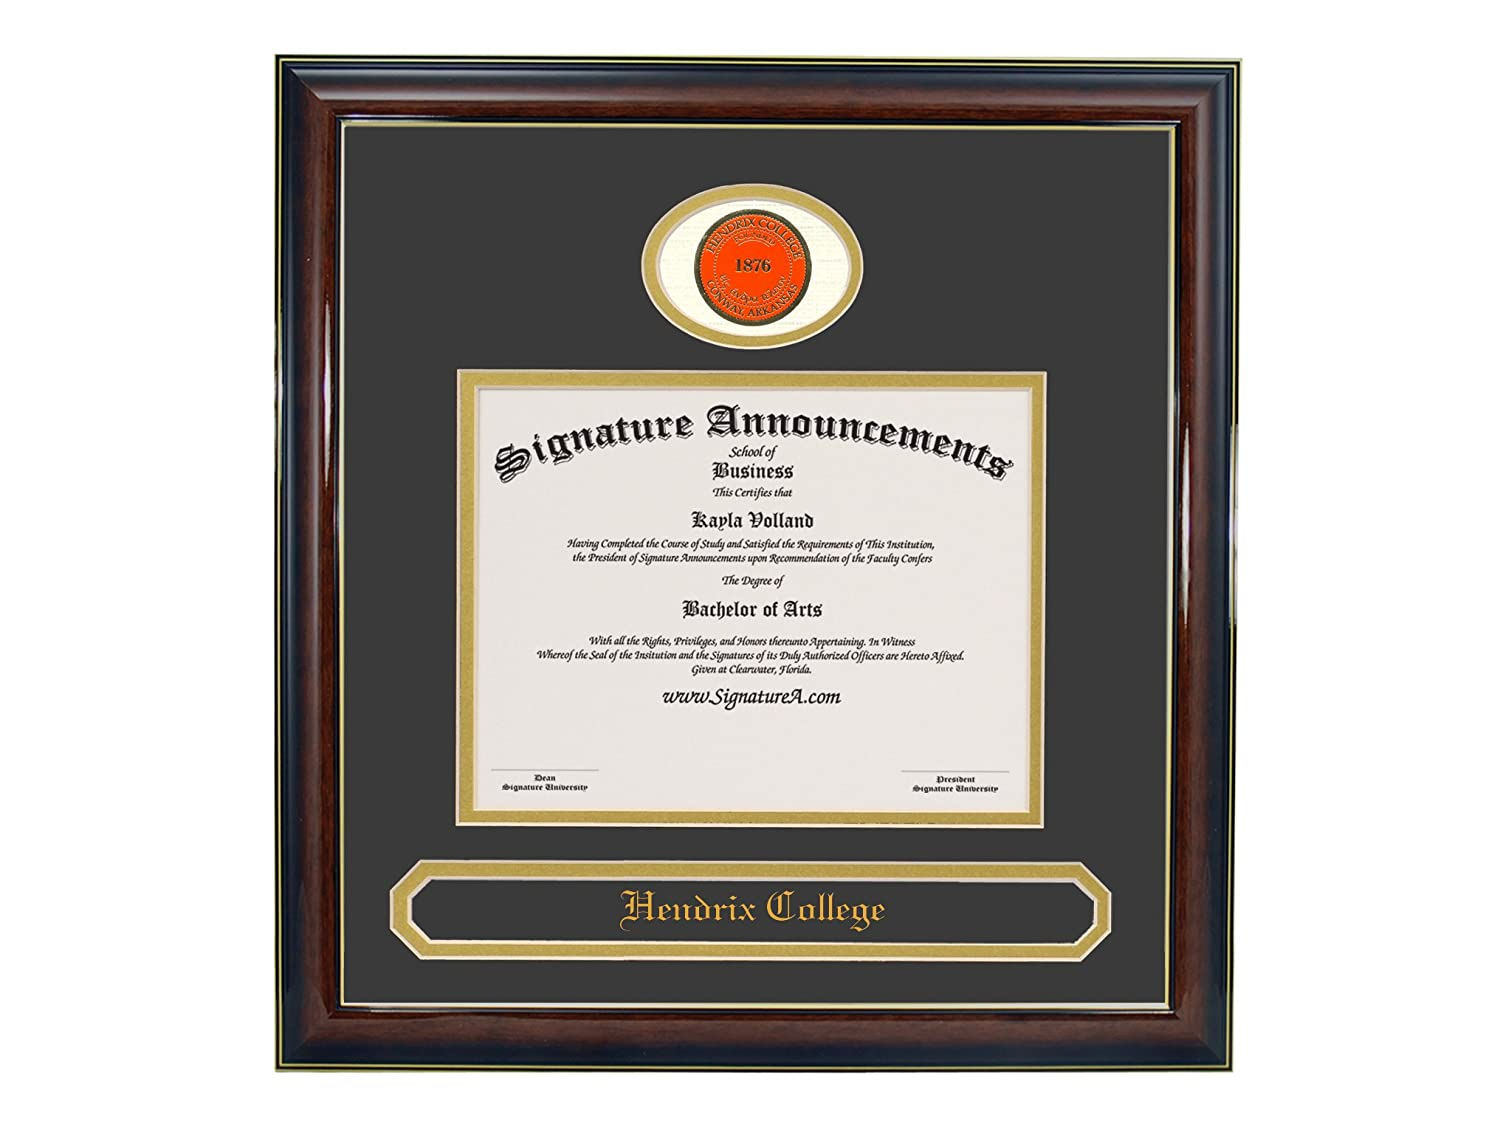 Signature Announcements Hendrix-College Doctorate Sculpted Foil Seal /& Name Graduation Diploma Frame 20 x 20 Gold Accent Gloss Mahogany